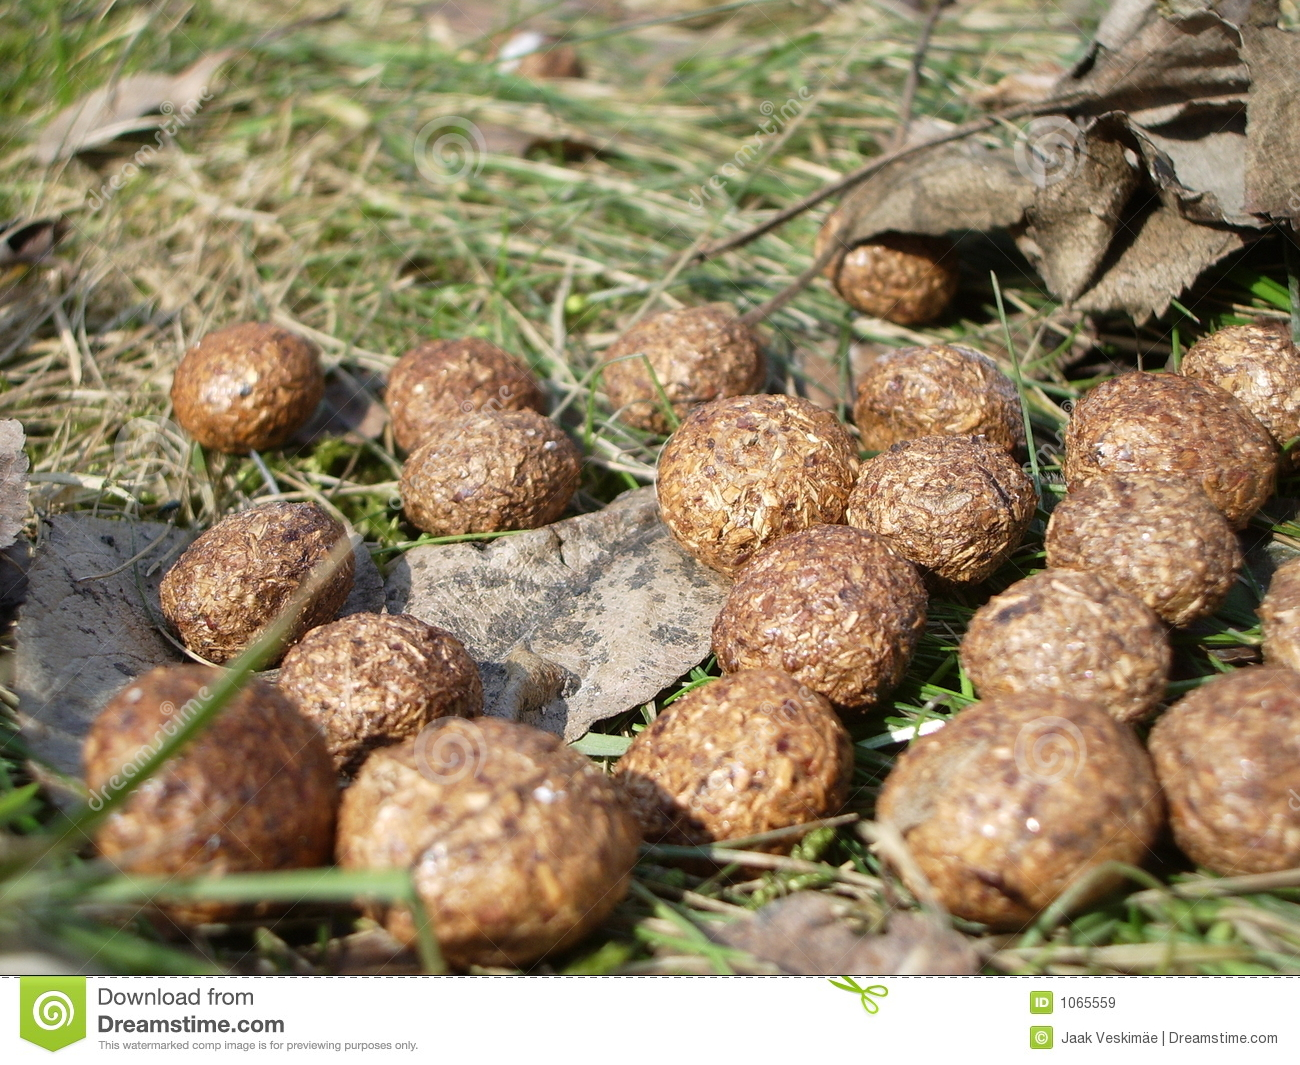 Royalty Free Stock Images: Rabbit poop